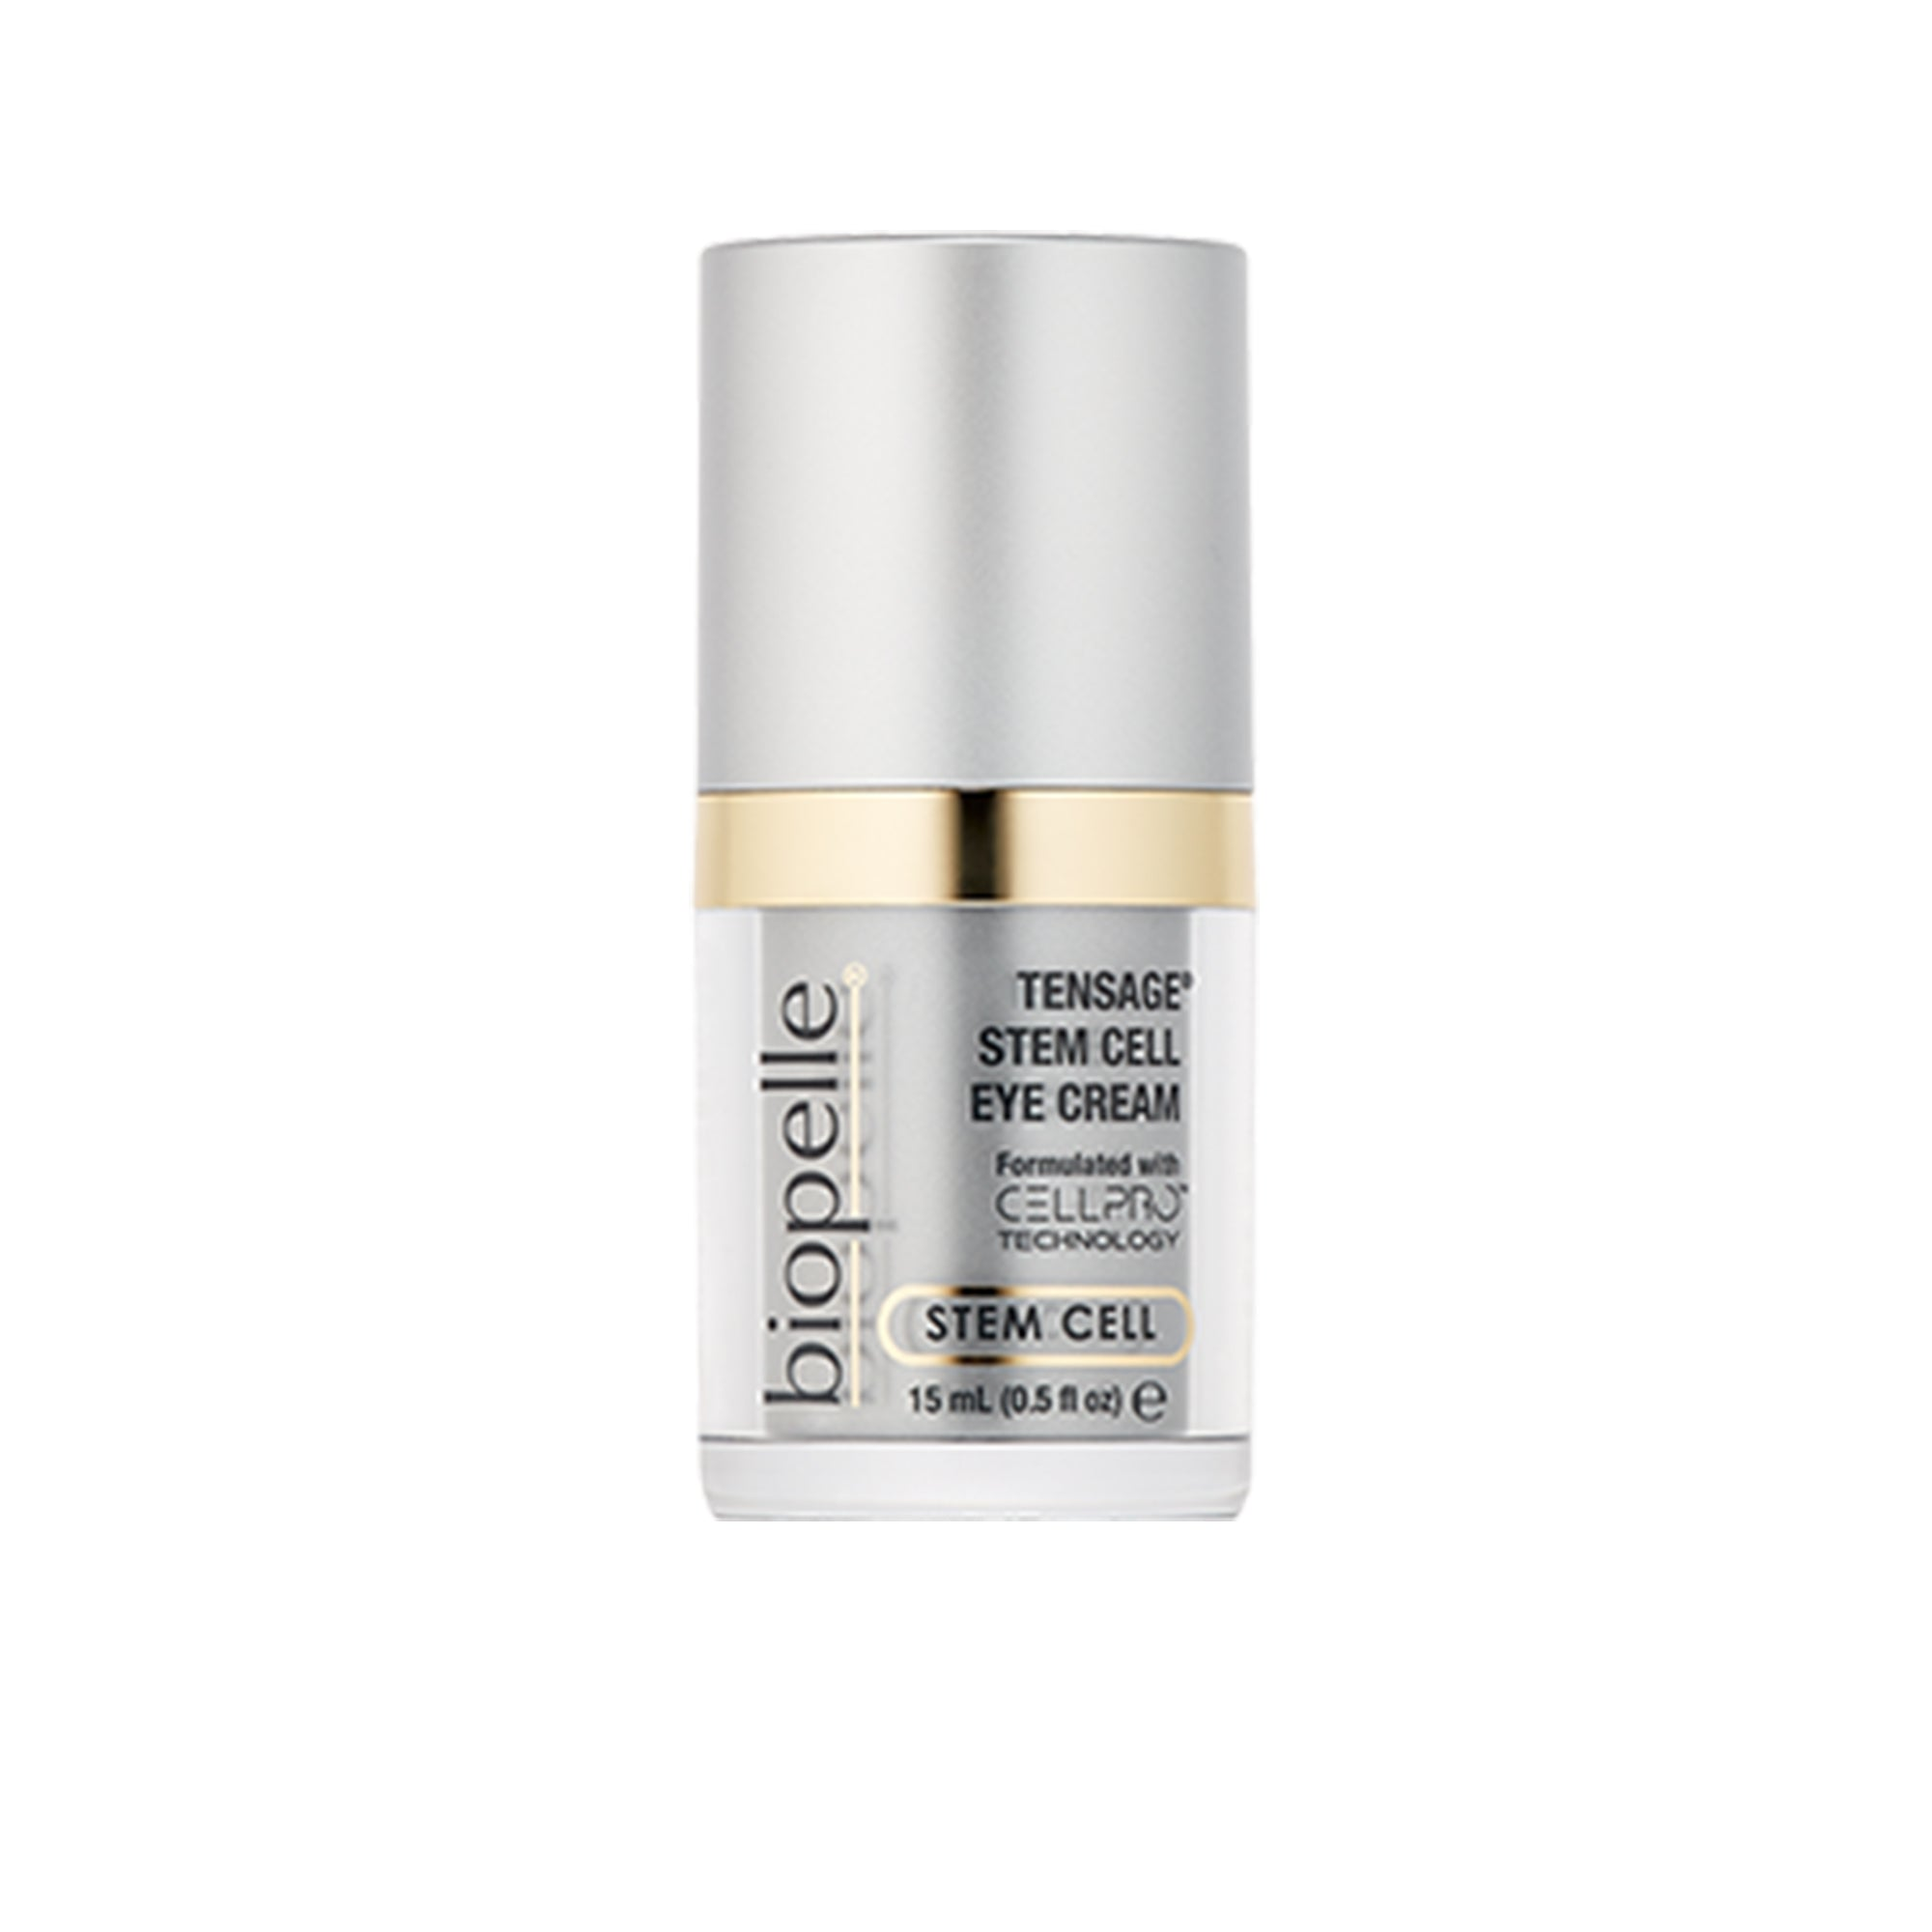 Biopelle Tensage Stem Cell Eye Cream 15ml